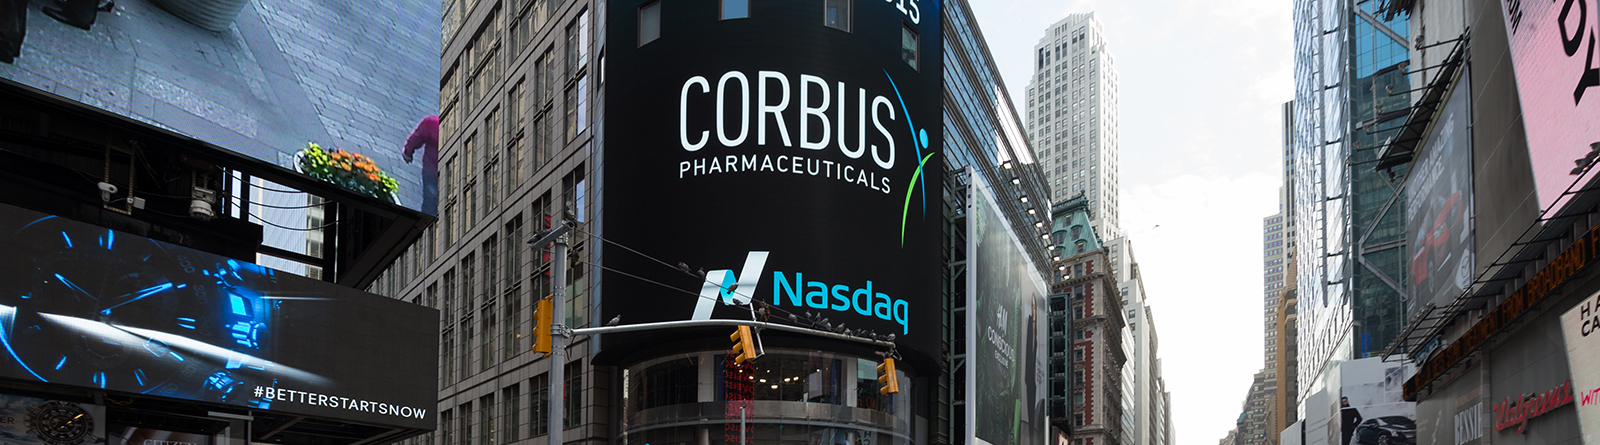 Corbus Pharmaceuticals to Present at the Jefferies 2019 Global Healthcare Conference in London Banner